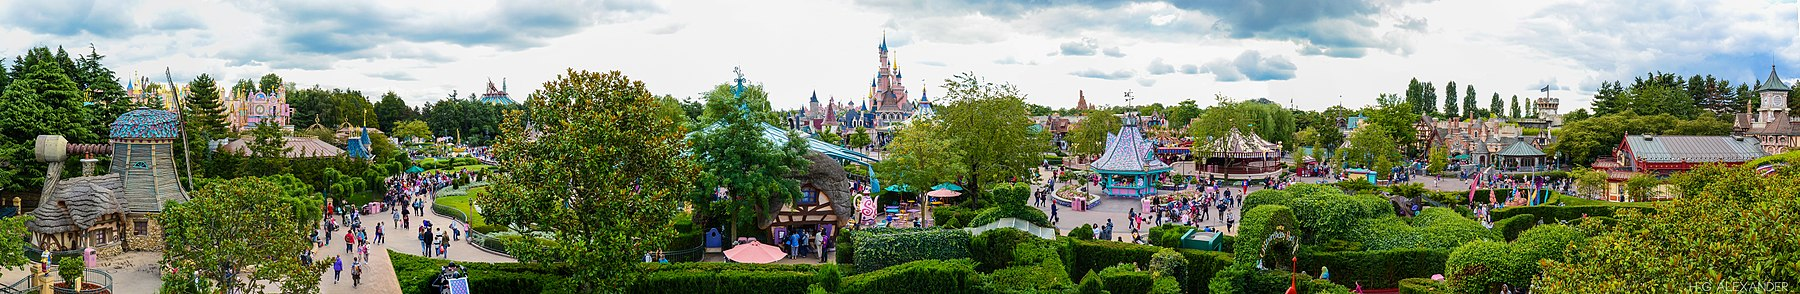 Disneyland Paris - Wikipedia